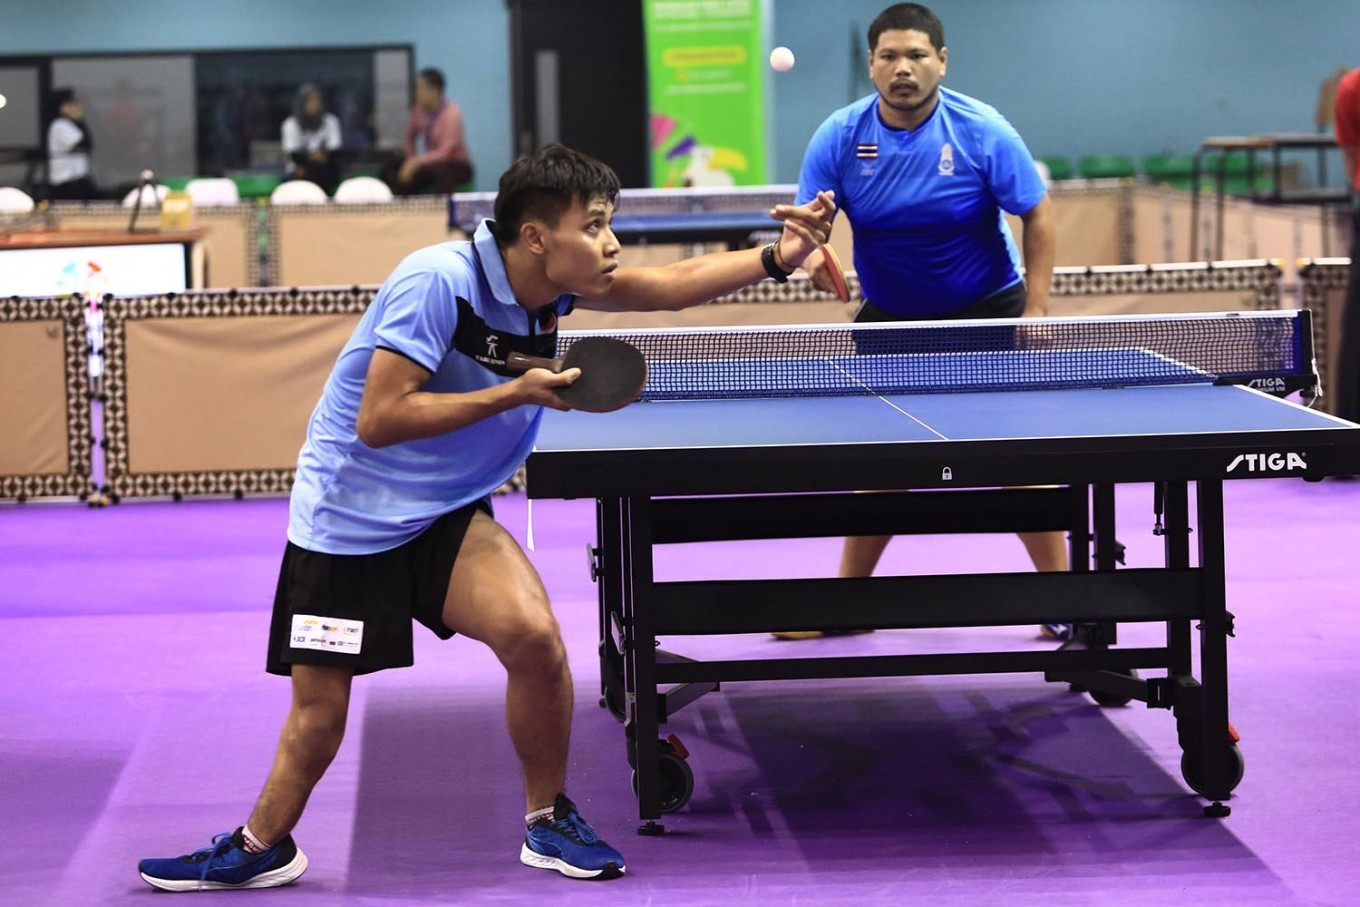 Games for all: Indonesian table tennis player Banyu Tri (left) serves against Thailand's Wangphonphathanasi in the Men's Team TT8 Indonesia Para Games Invitation Tournament in Jakarta on Tuesday, July 3, 2018. JP/Dhoni Setiawan